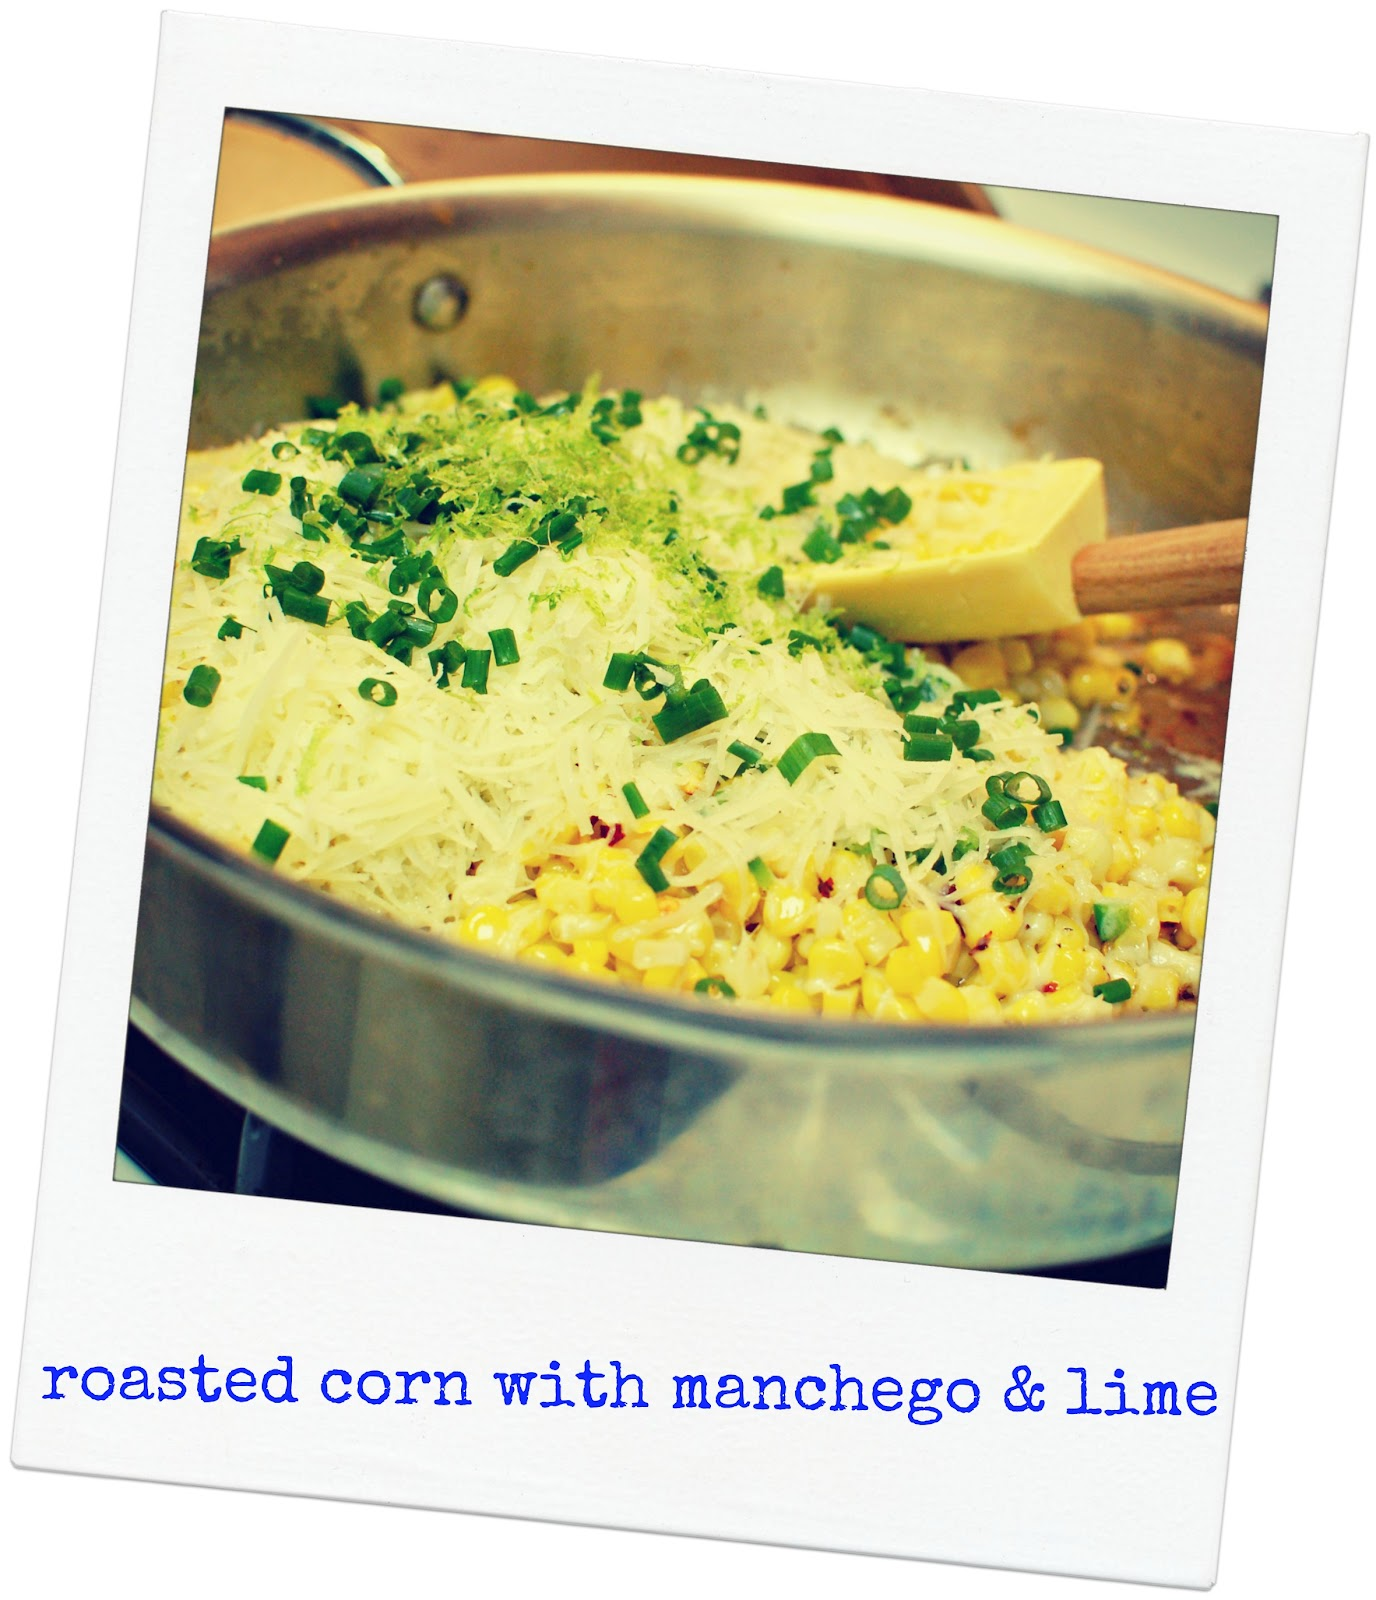 roasted corn with manchego and lime